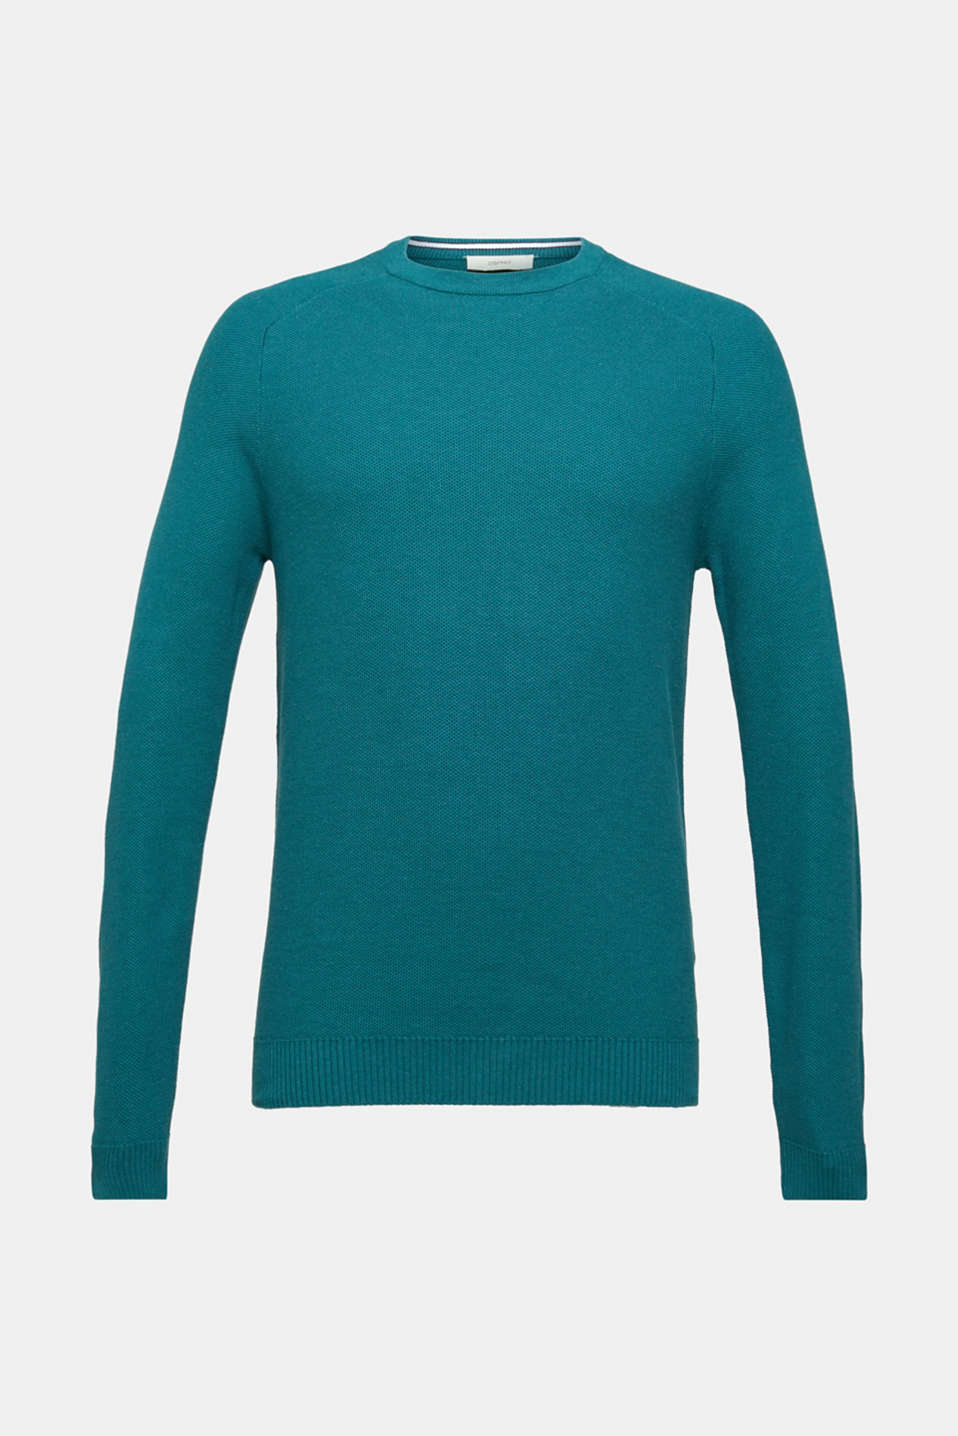 Sweaters, TEAL BLUE 5, detail image number 6